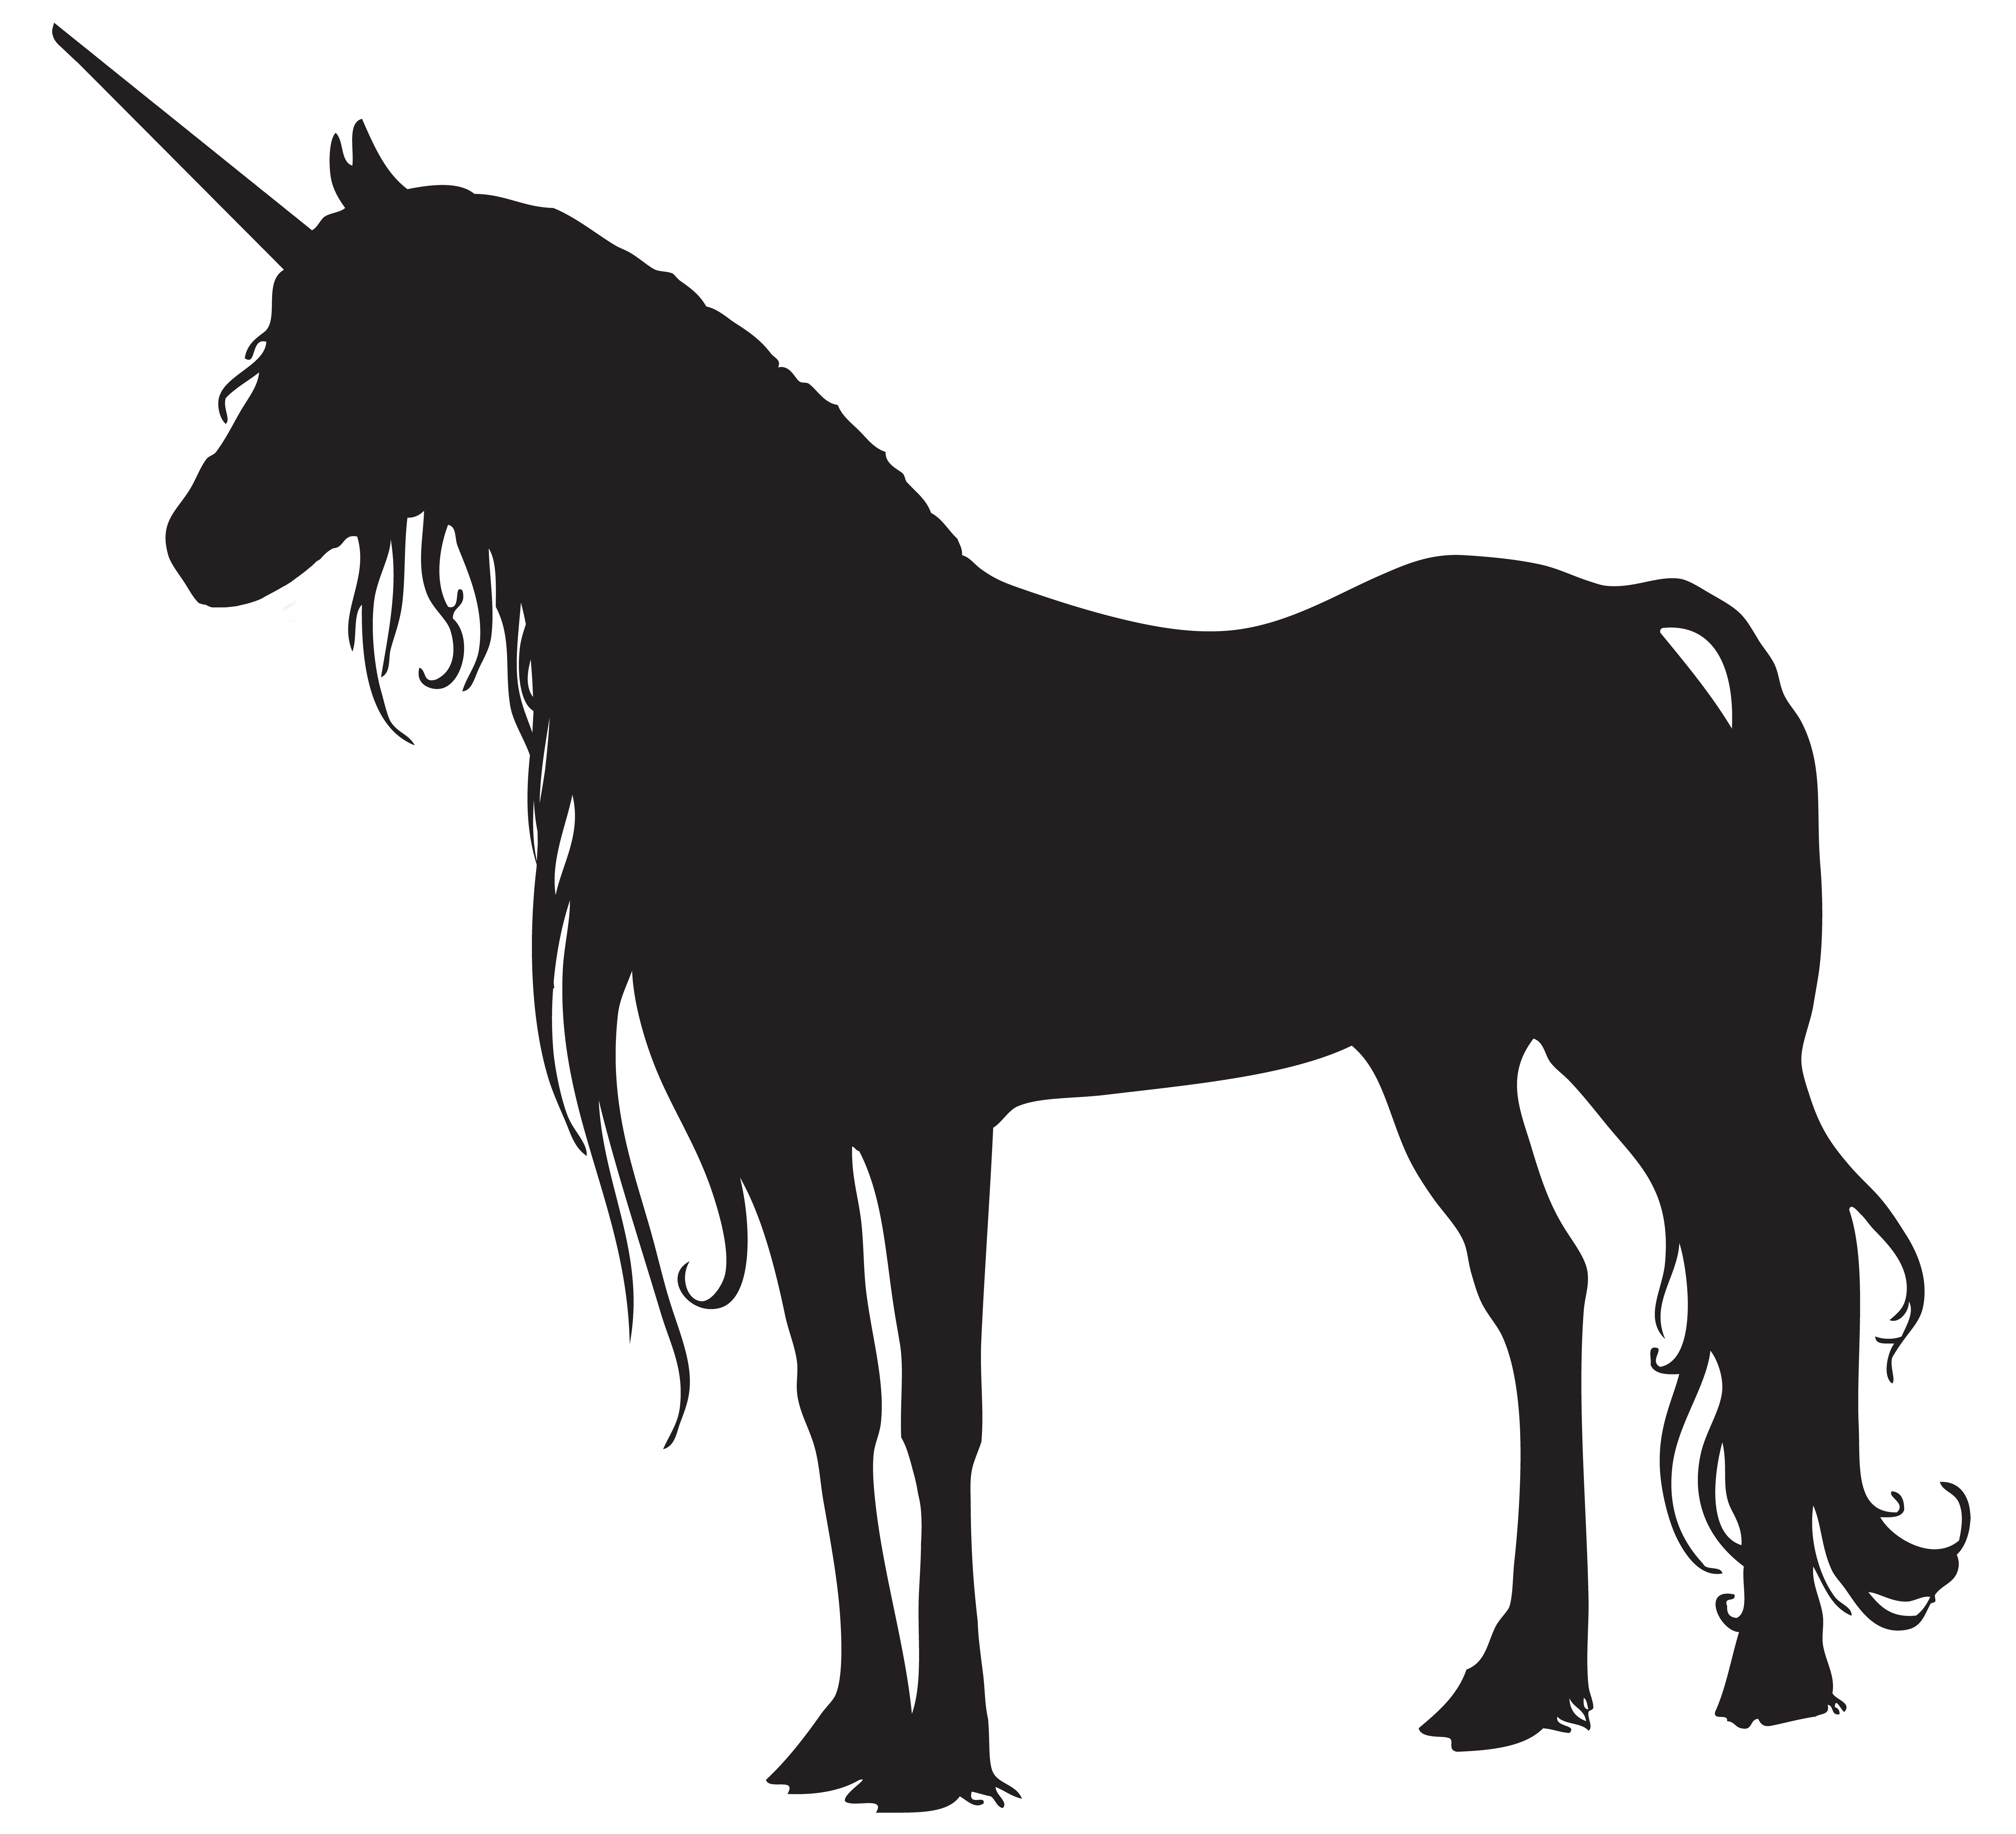 Pictograph horse clipart banner free library Silhouette Unicorn Scalable Vector Graphics Clip art ... banner free library